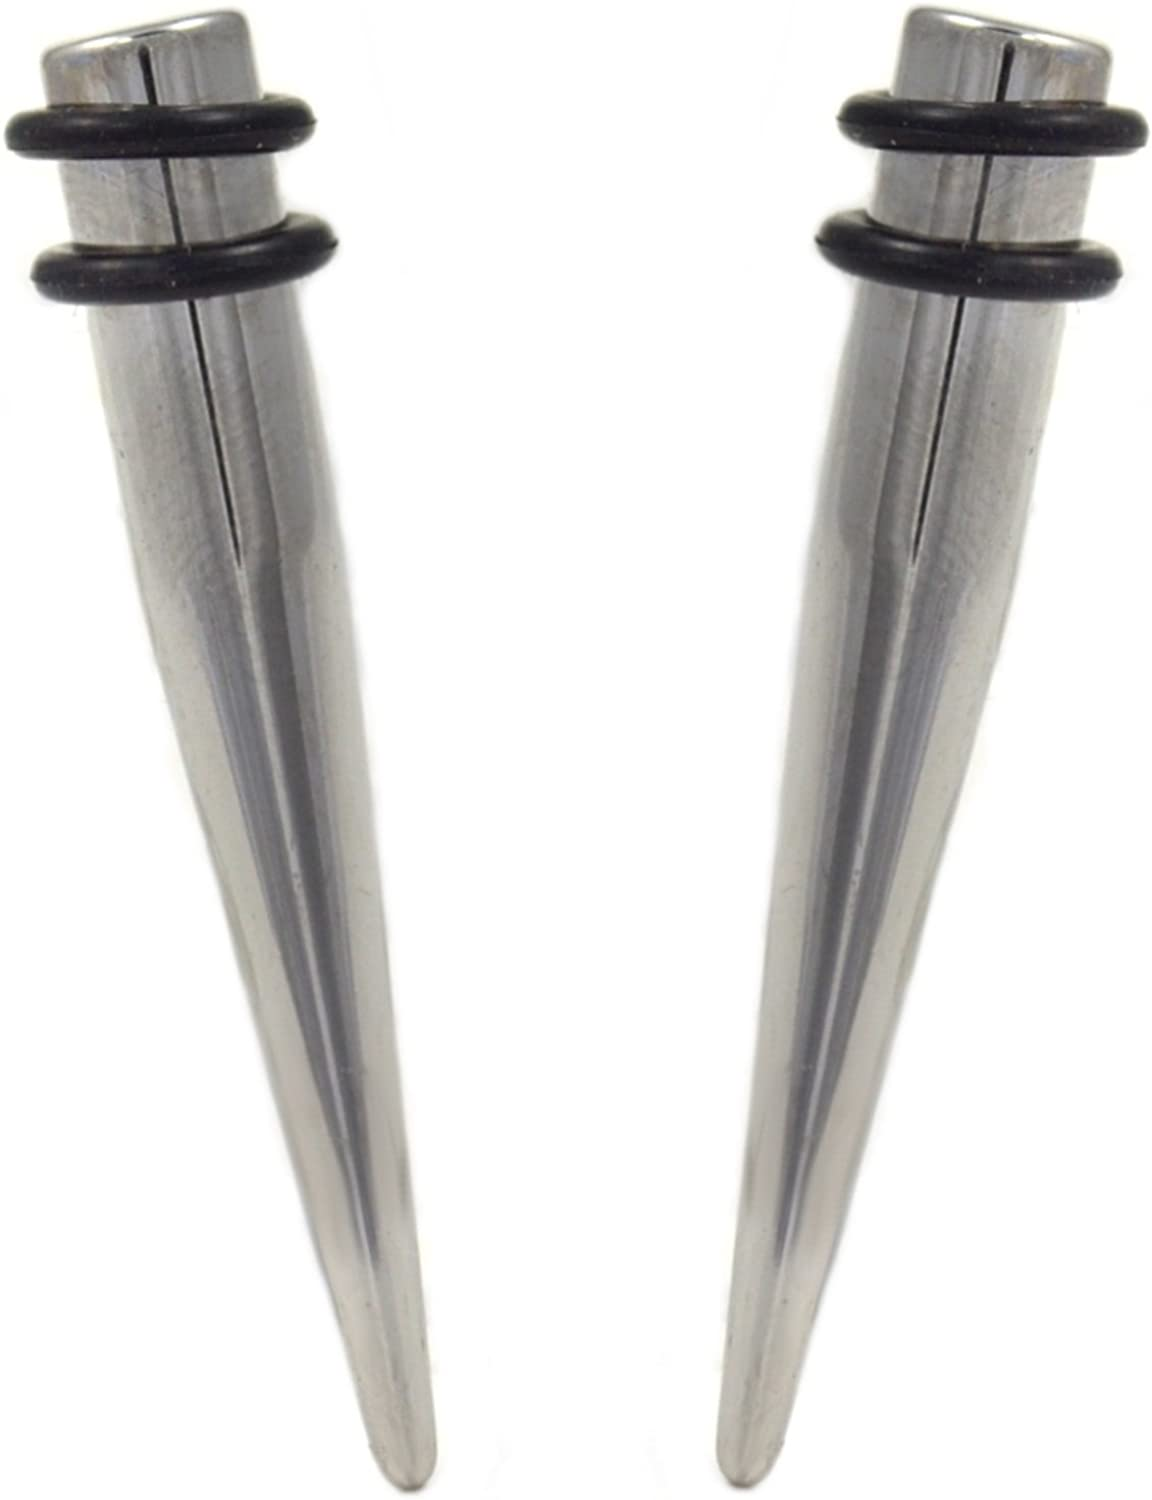 BYB Plugs Pair of Stainless Steel Straight Piercing Tapers Ear Stretching Jewelry - 1 Gauge(1G-7mm)